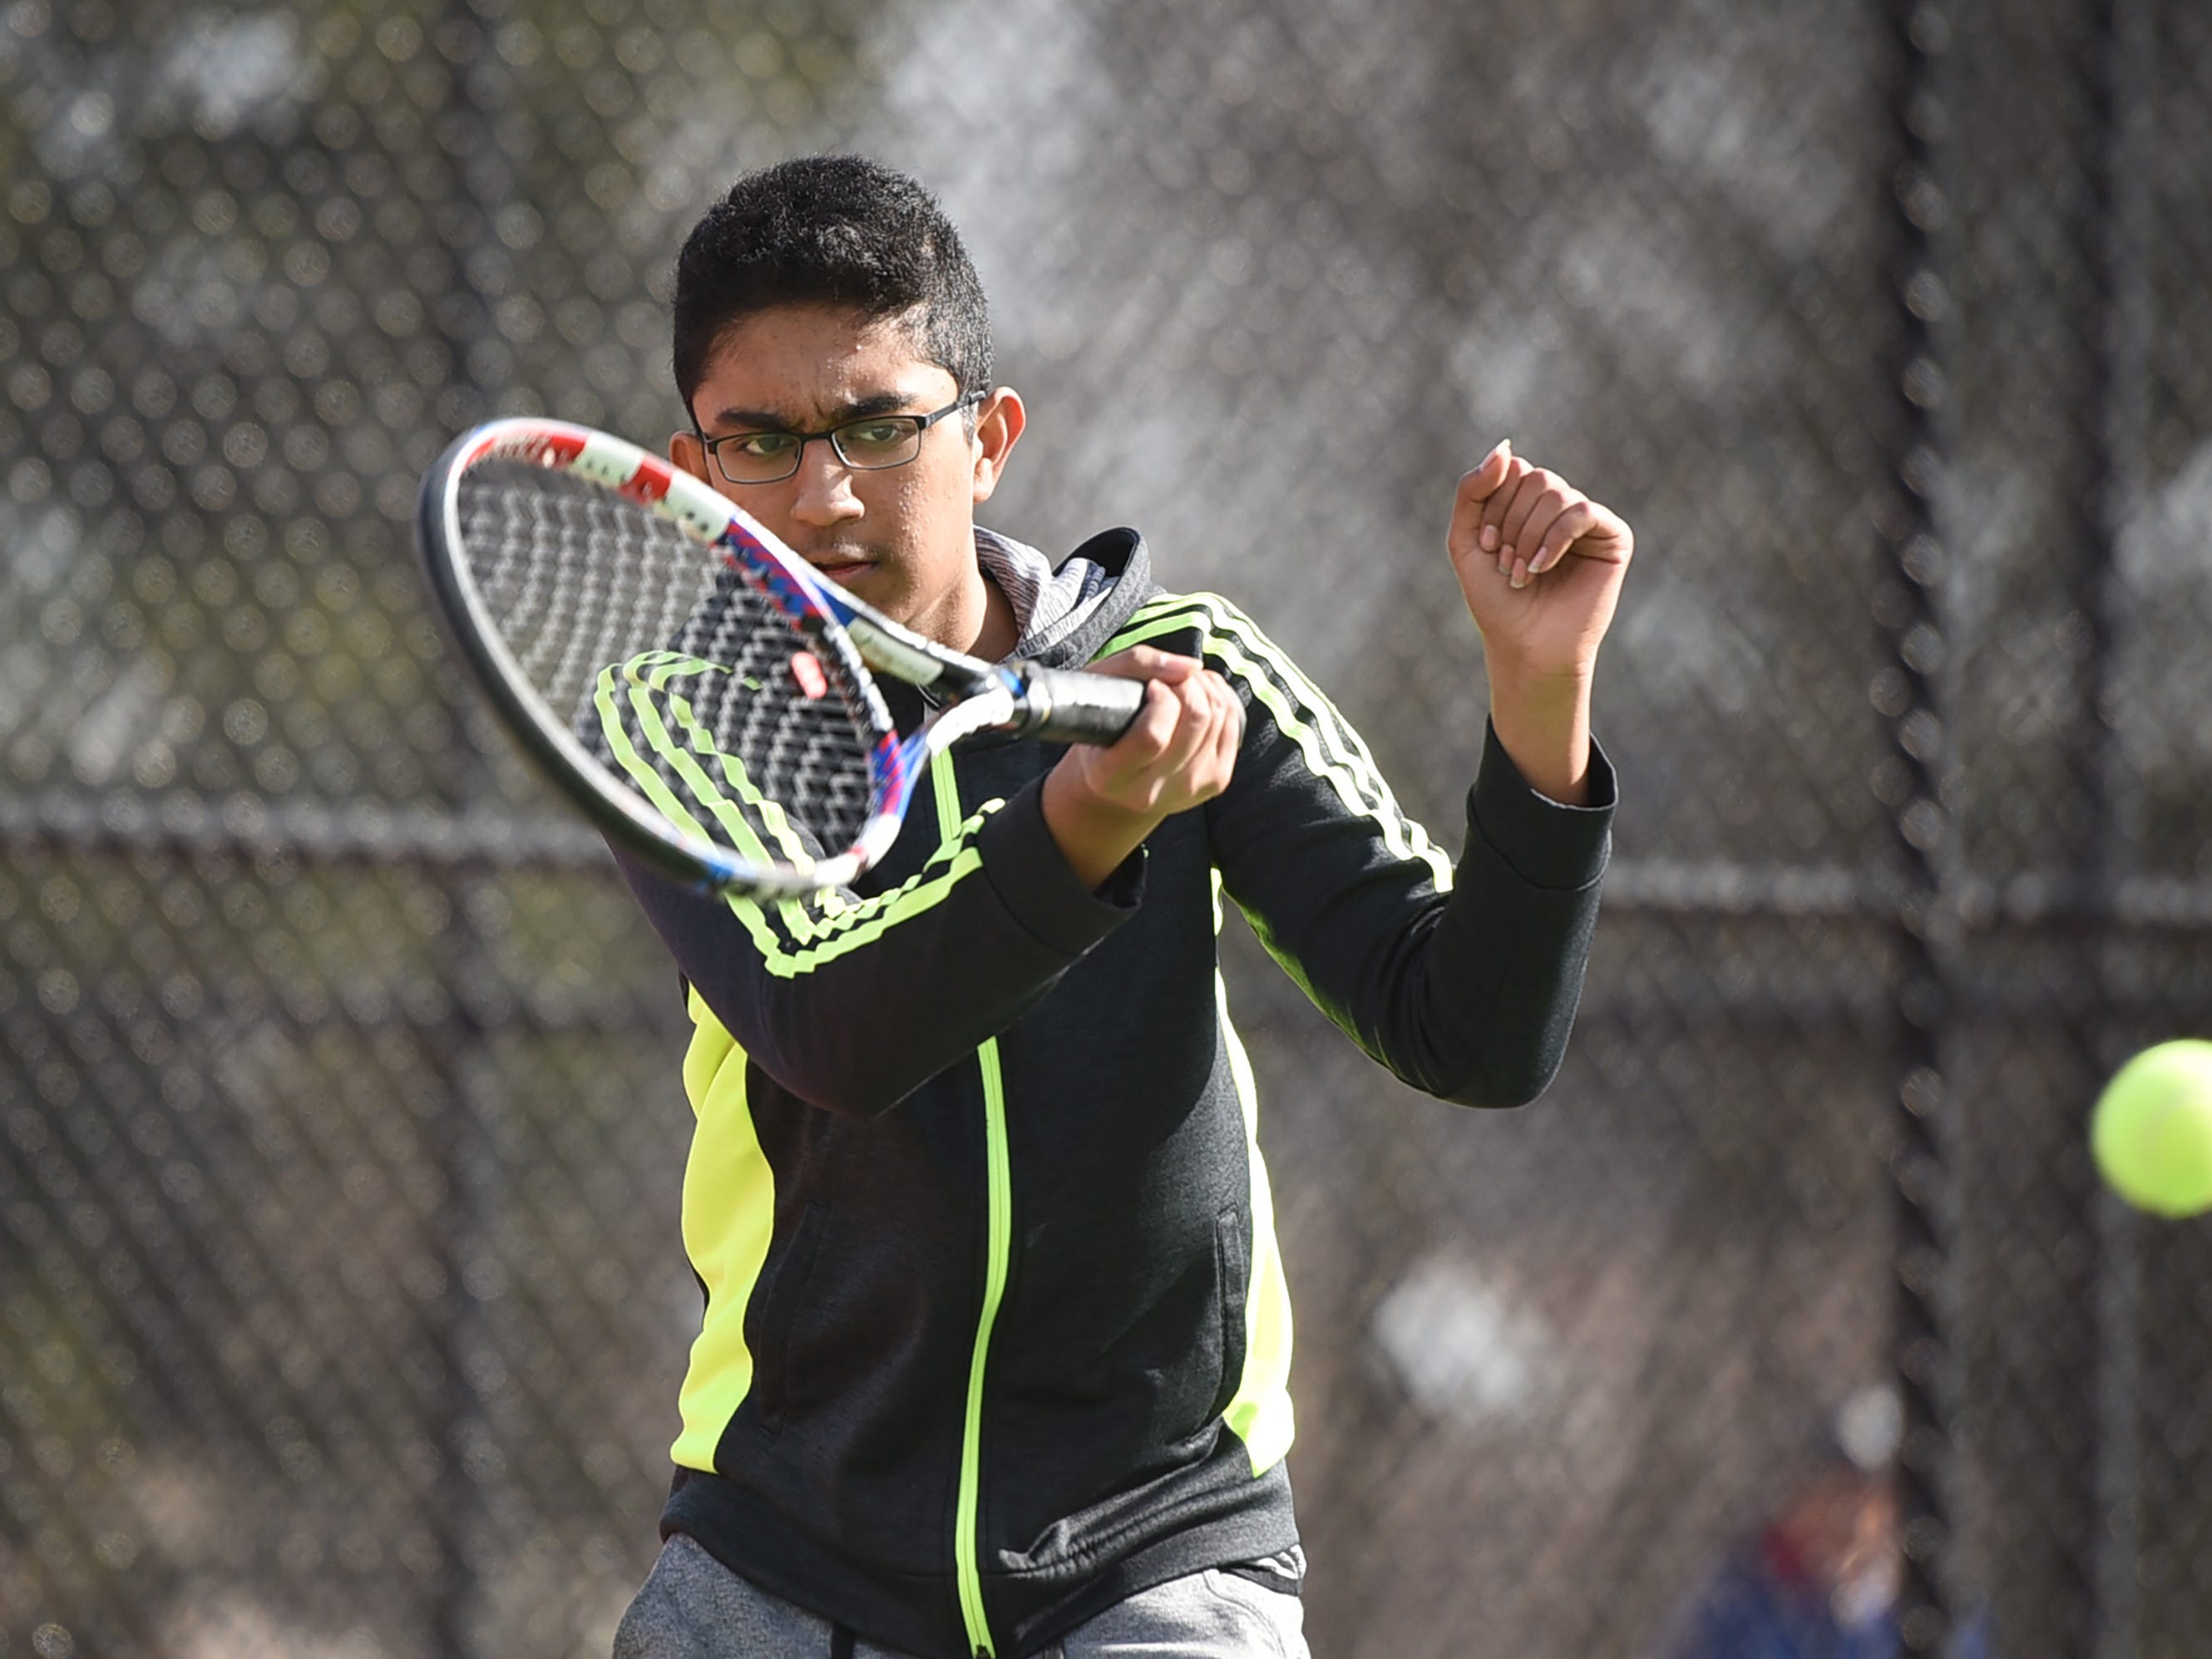 Morris Hills boys tennis player Srikanth Dhamodharan (grade 10) of Montville plays during a practice, photographed at Morris Hills High School in Rockaway on 03/19/19. This is for the season preview on team diversity.